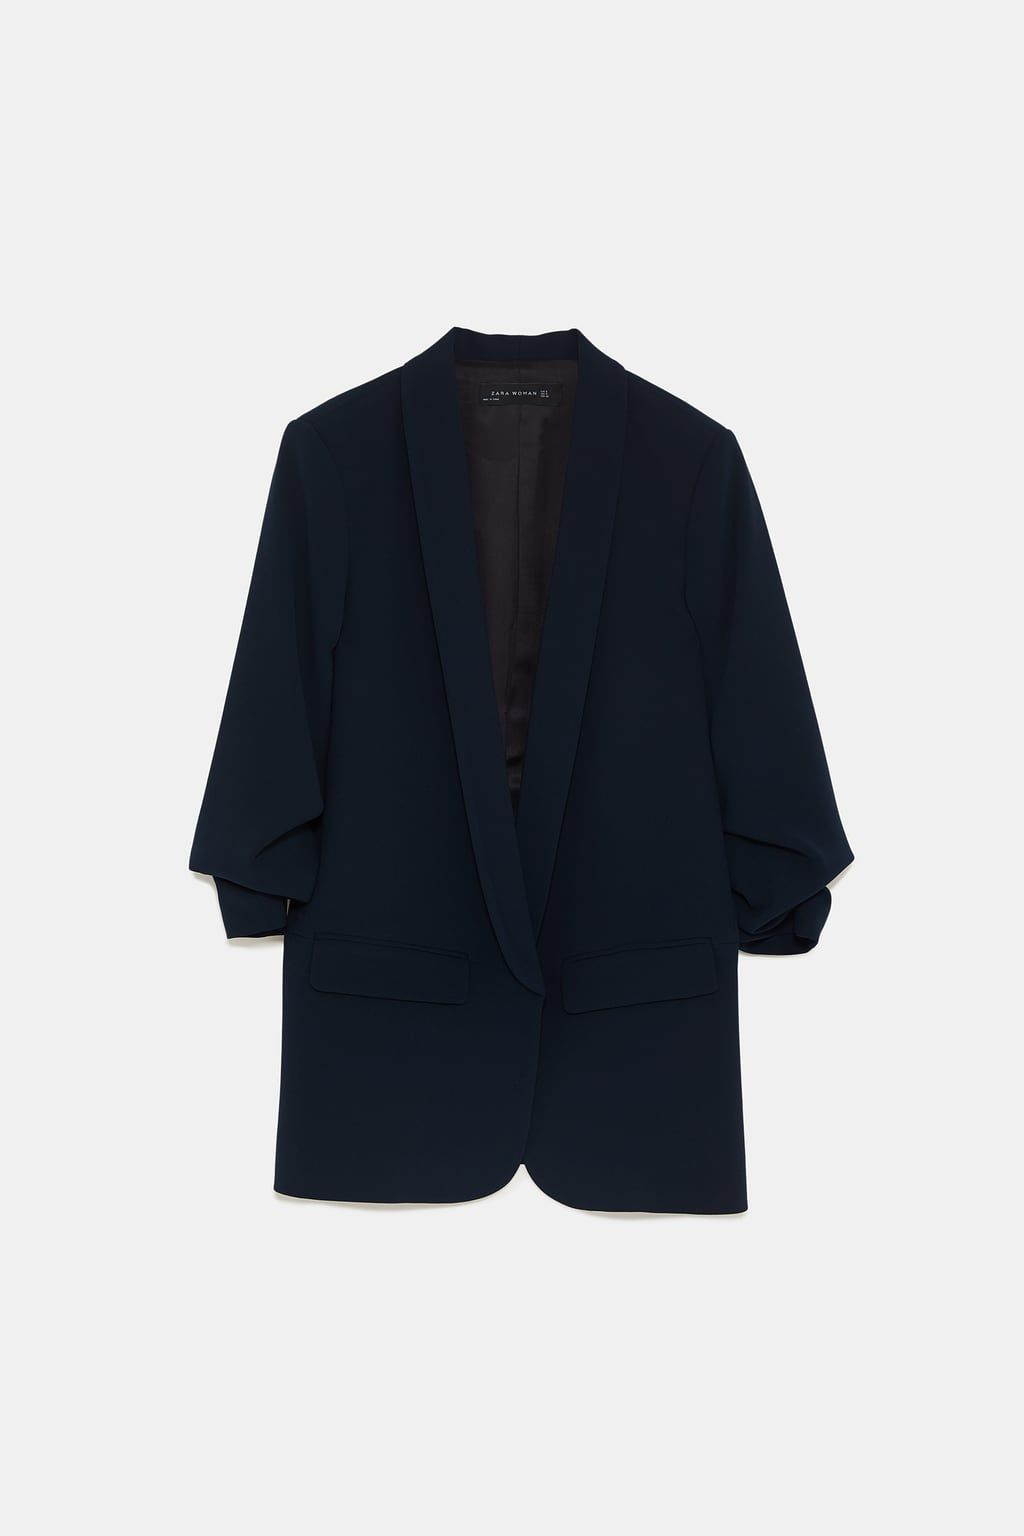 low priced 9c3c1 05df7 Zara Navy Blue Crepe Blazer